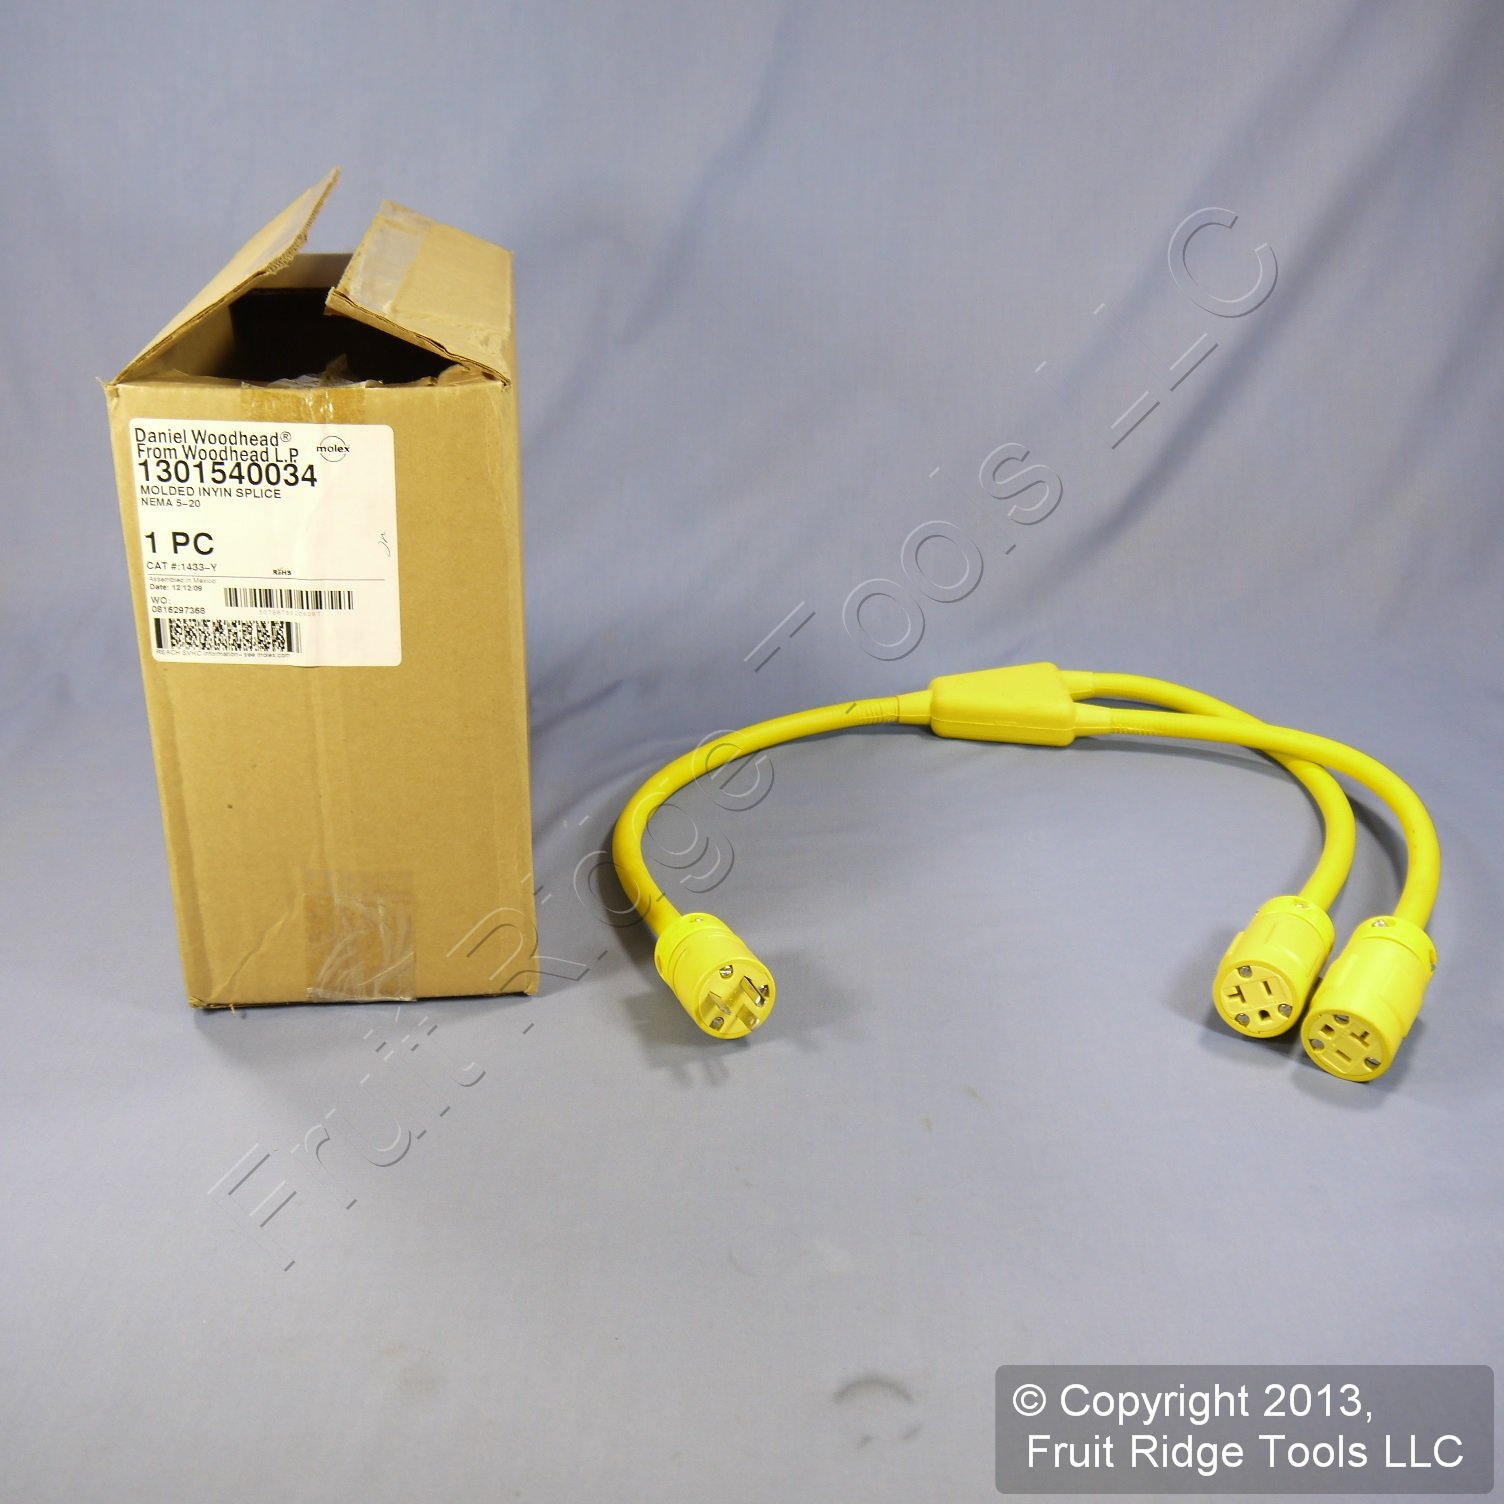 Woodhead 1433-Y Super-Safeway Molded Y Cordset, Industrial Duty, Straight Blade, 2 Poles, 3 Wires, NEMA 5-20 Configuration, 12-Gauge SOOW Cord, Rubber, Yellow, 20A Current, 125V Voltage, 3ft Cord Length by Woodhead